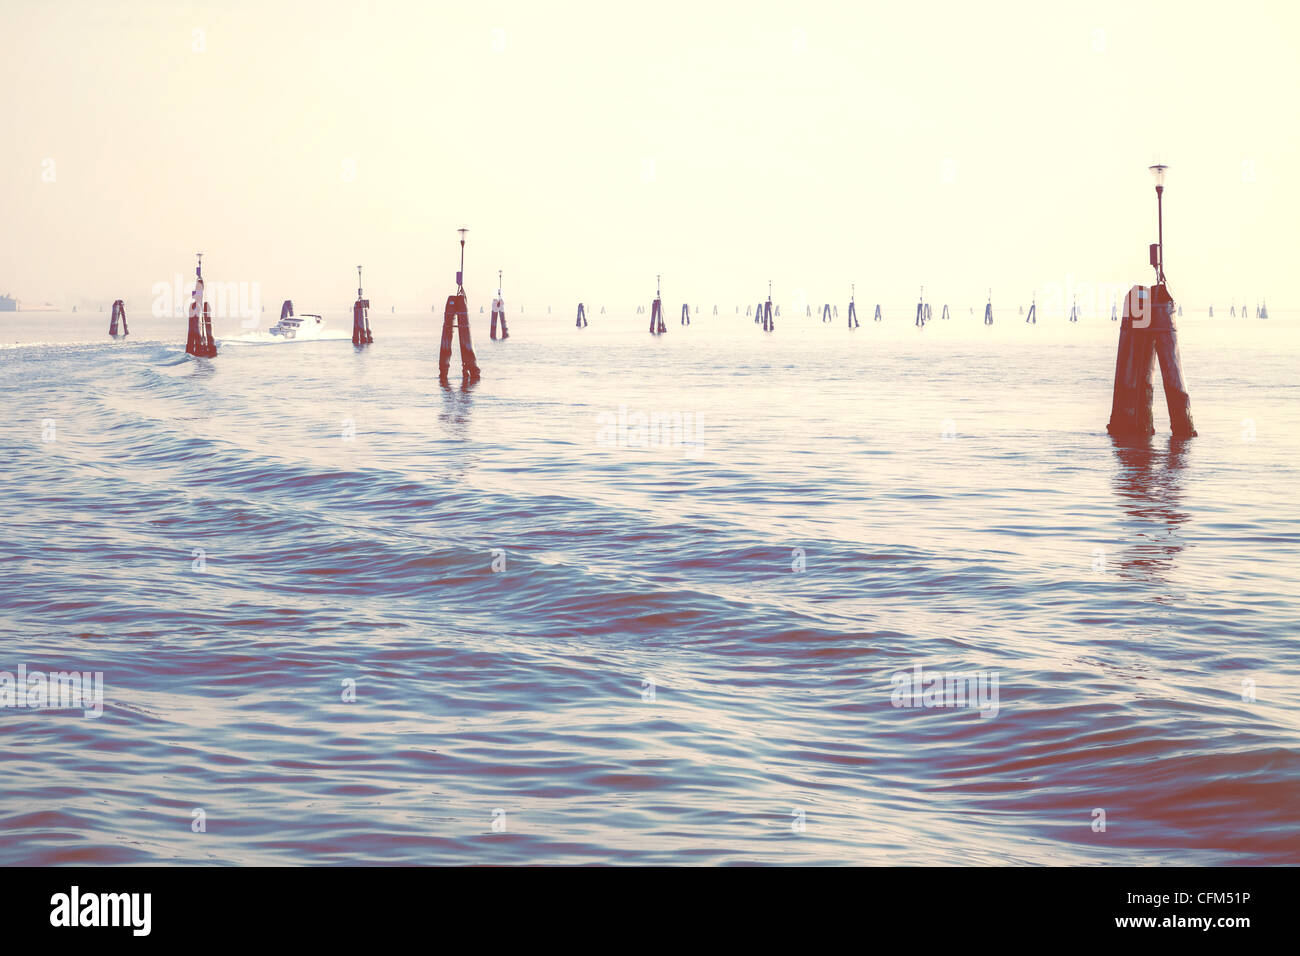 Waterway in the Lagoon of Venice - Stock Image